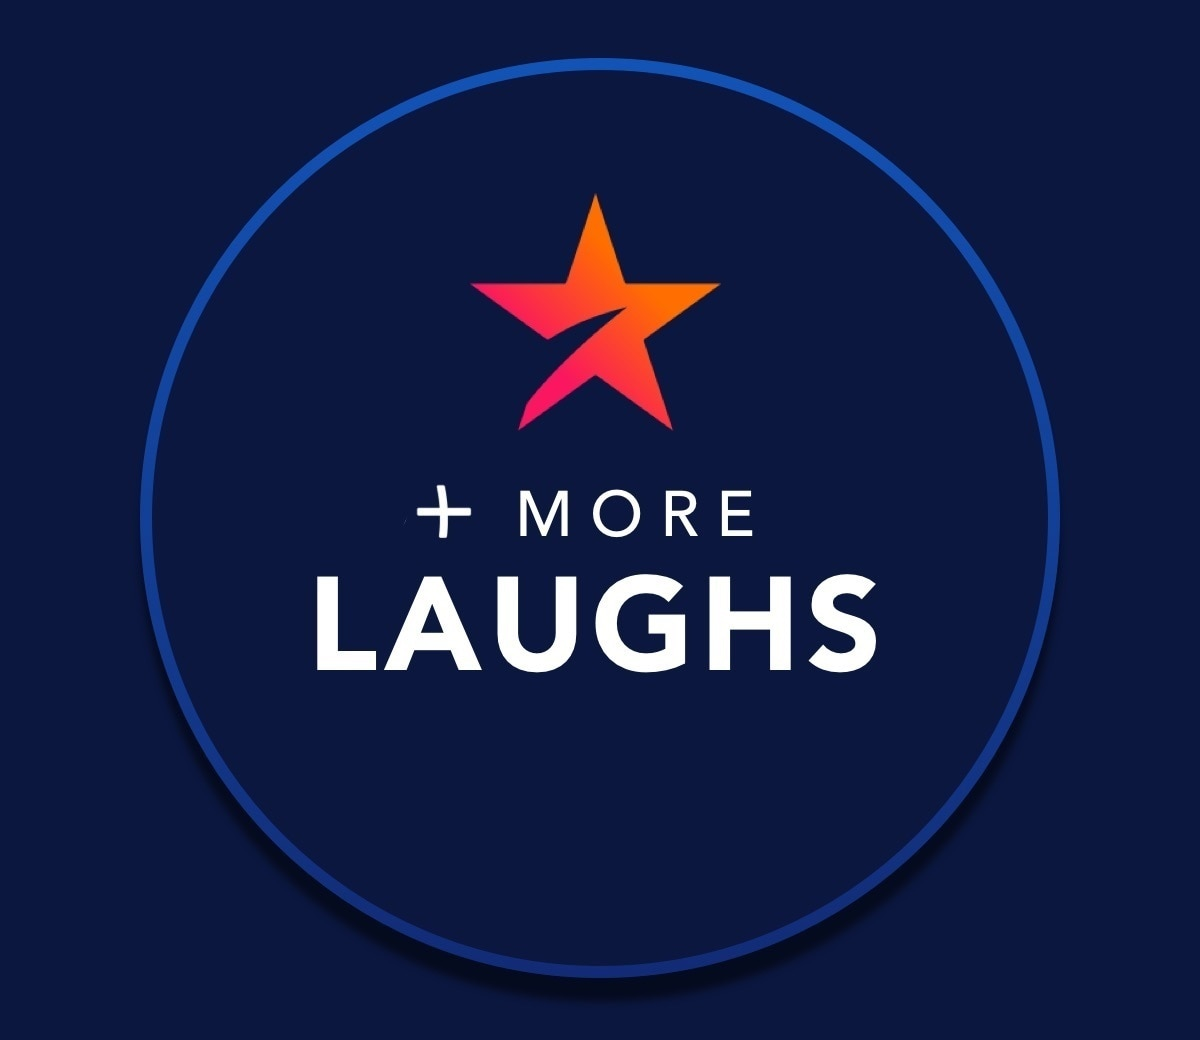 + More laughs